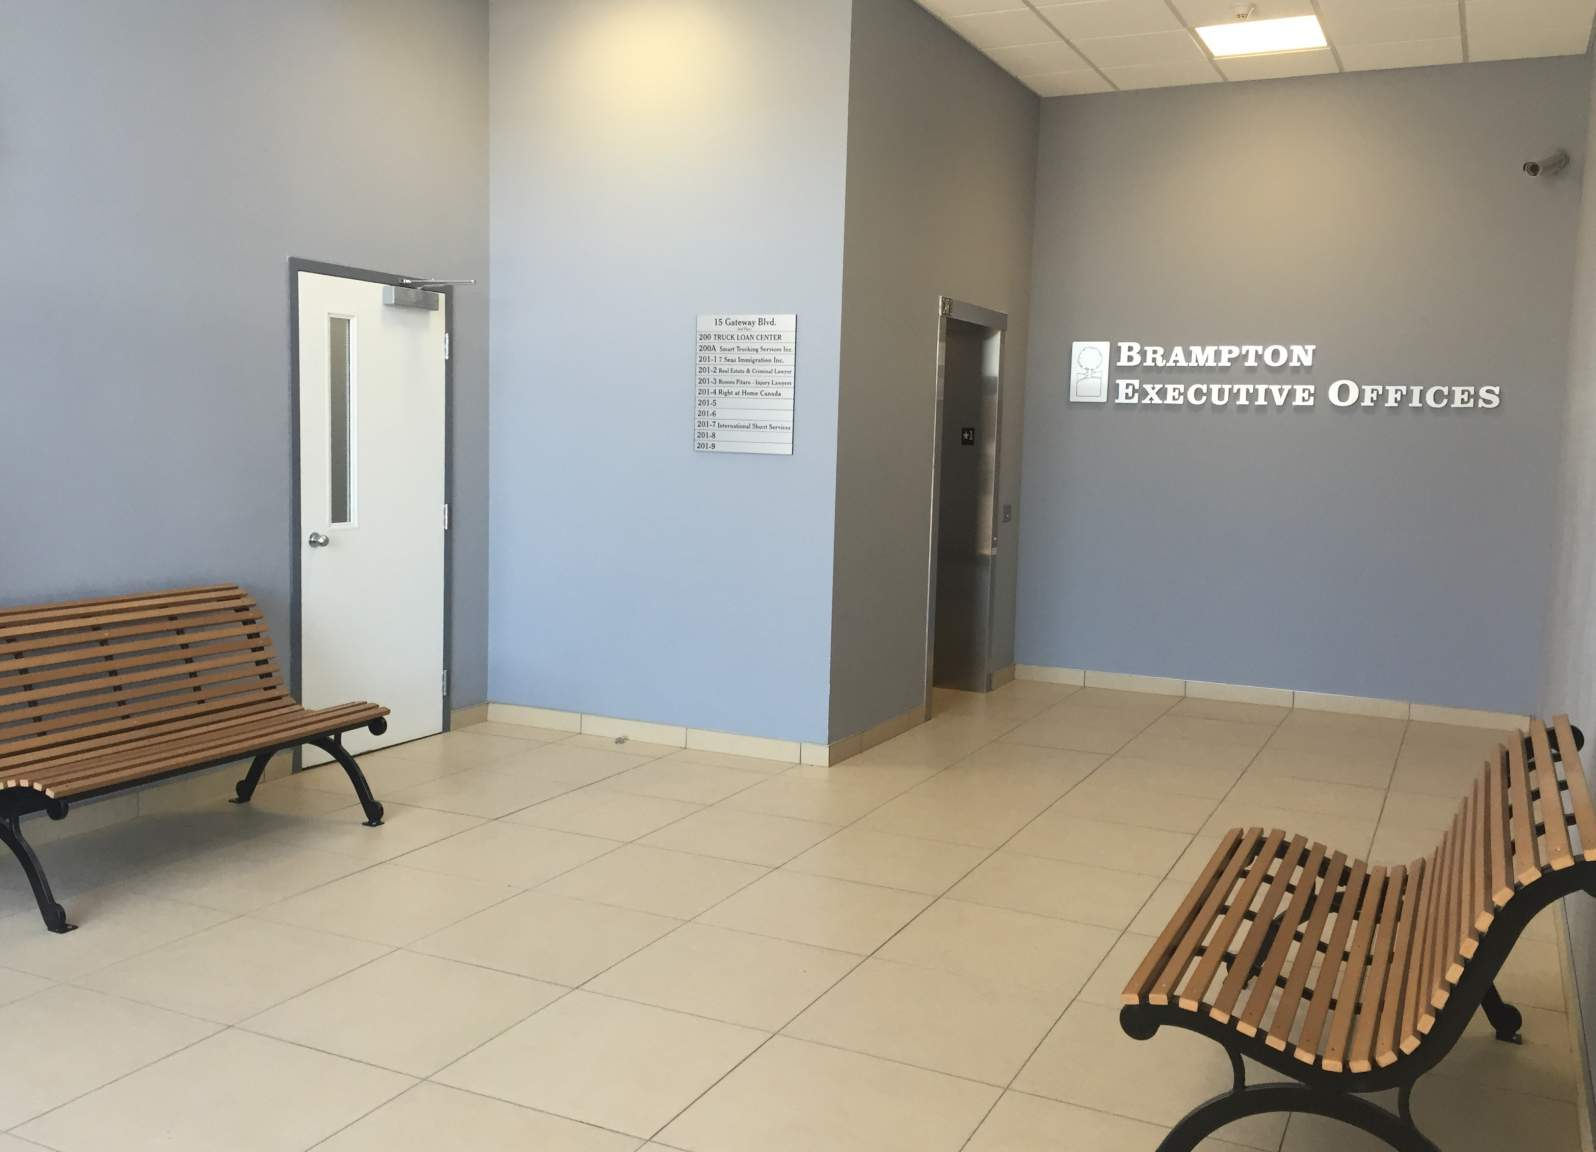 General office for rent in Brampton at Brampton Executive Offices - Photo 04 - RentersPages – L180404